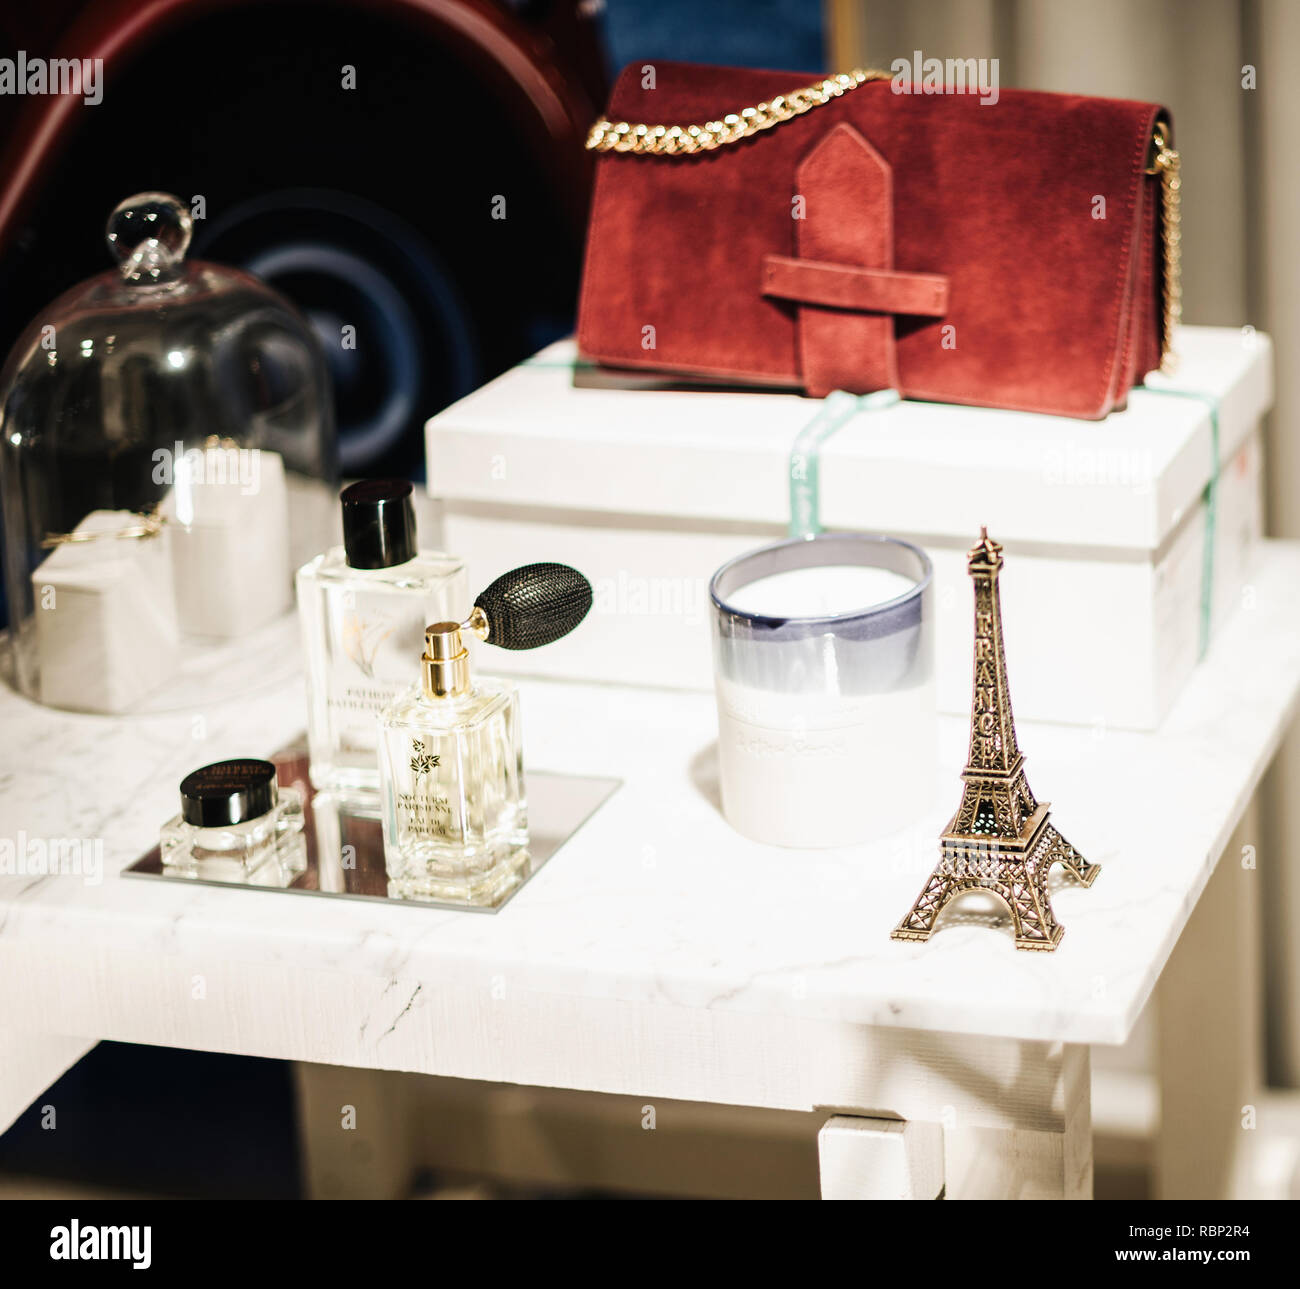 STRASBOURG, FRANCE - DEC 23, 2016: Fashionable setting of luxury perfume, purse, candle, Eiffel Tower silhouette in the fashion store in Paris - Stock Image